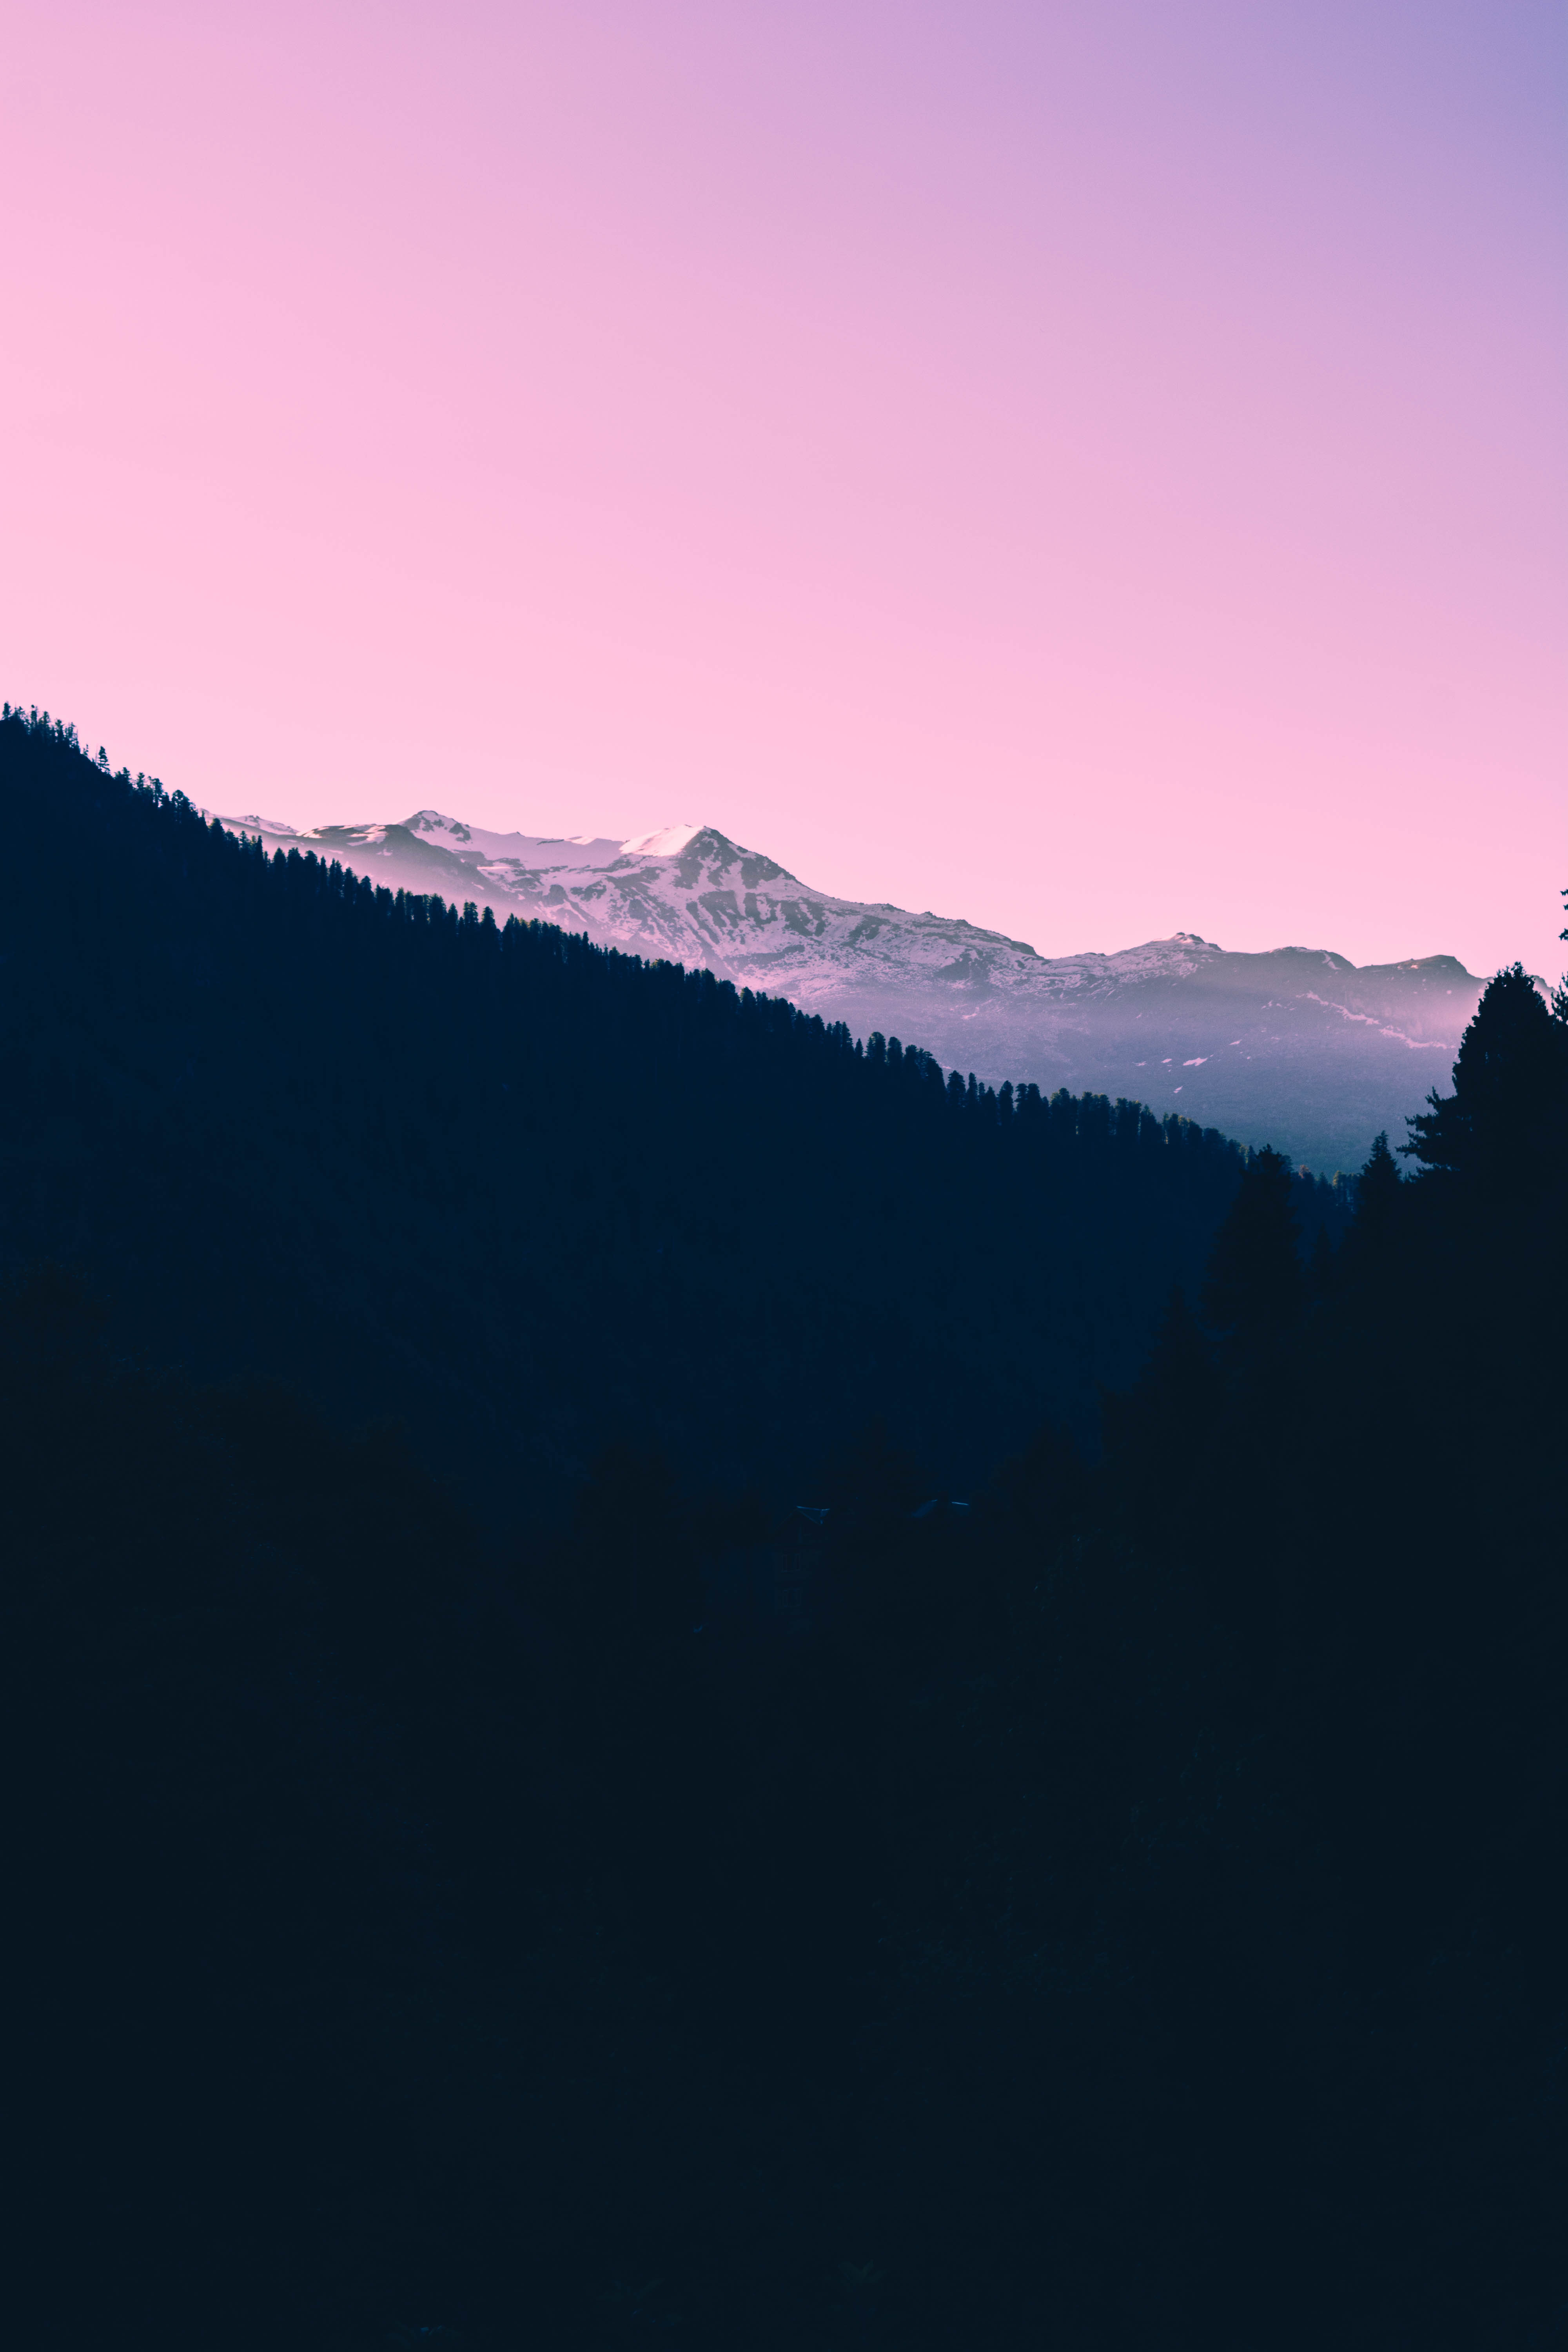 nature backgrounds tumblr. A Dark Sunset Over Snow Covered Mountains And Pink Sky. Nature Backgrounds Tumblr